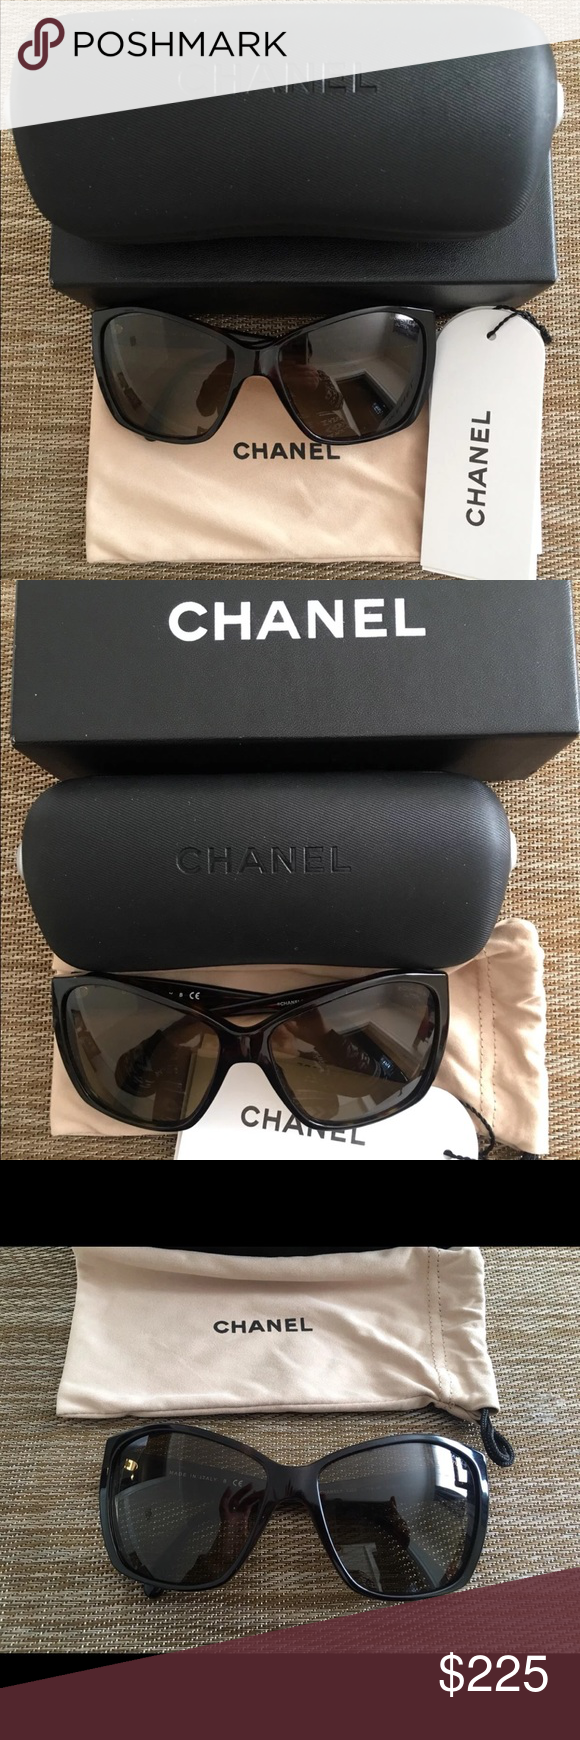 91d60989a13 Chanel brown sunglasses! Barley used brown sunglasses comes with box